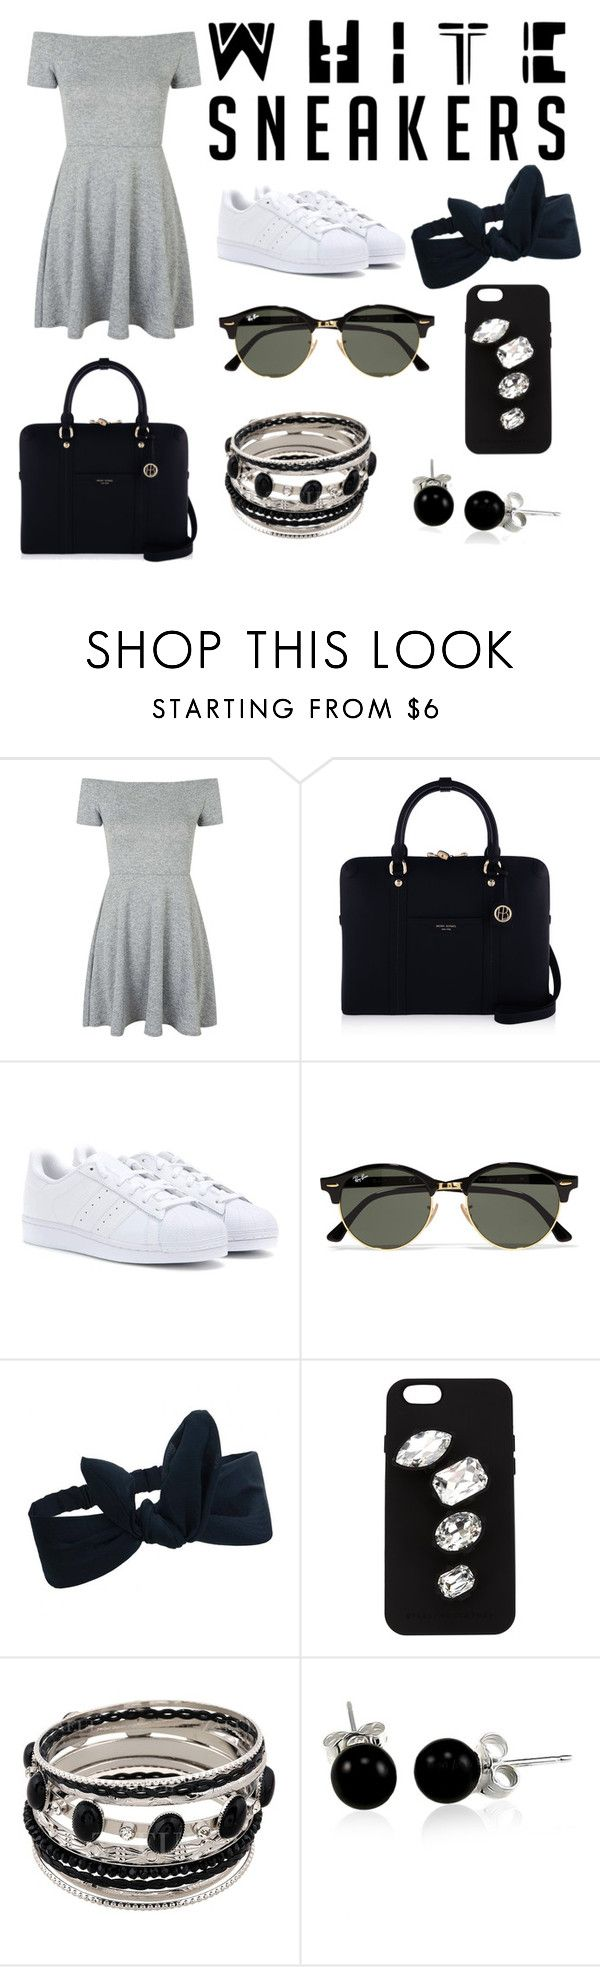 """Look of White Sneakers- White,  Black and Grey"" by gabydesigner on Polyvore featuring Topshop, Henri Bendel, adidas, Ray-Ban, STELLA McCARTNEY and Bling Jewelry"